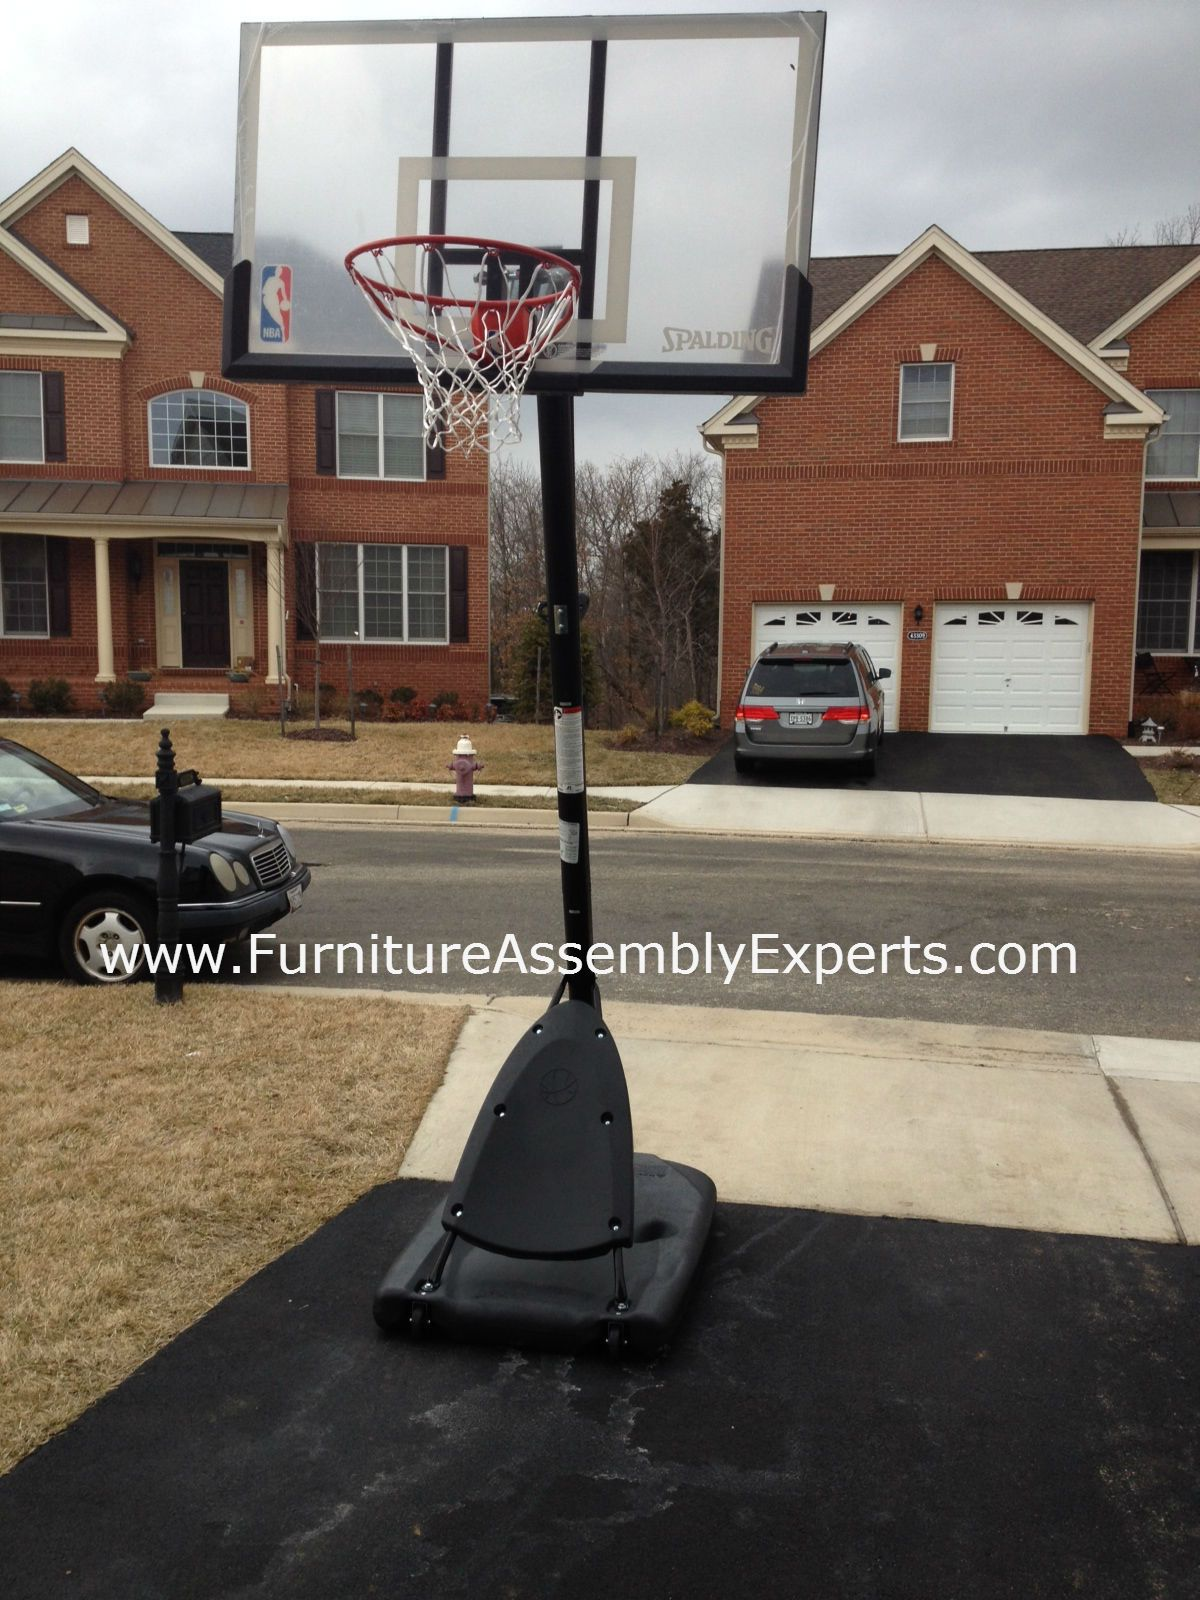 Pin On Furniture Assembly Experts Dc Md Va In Ground Portable Basketball Hoop Installation